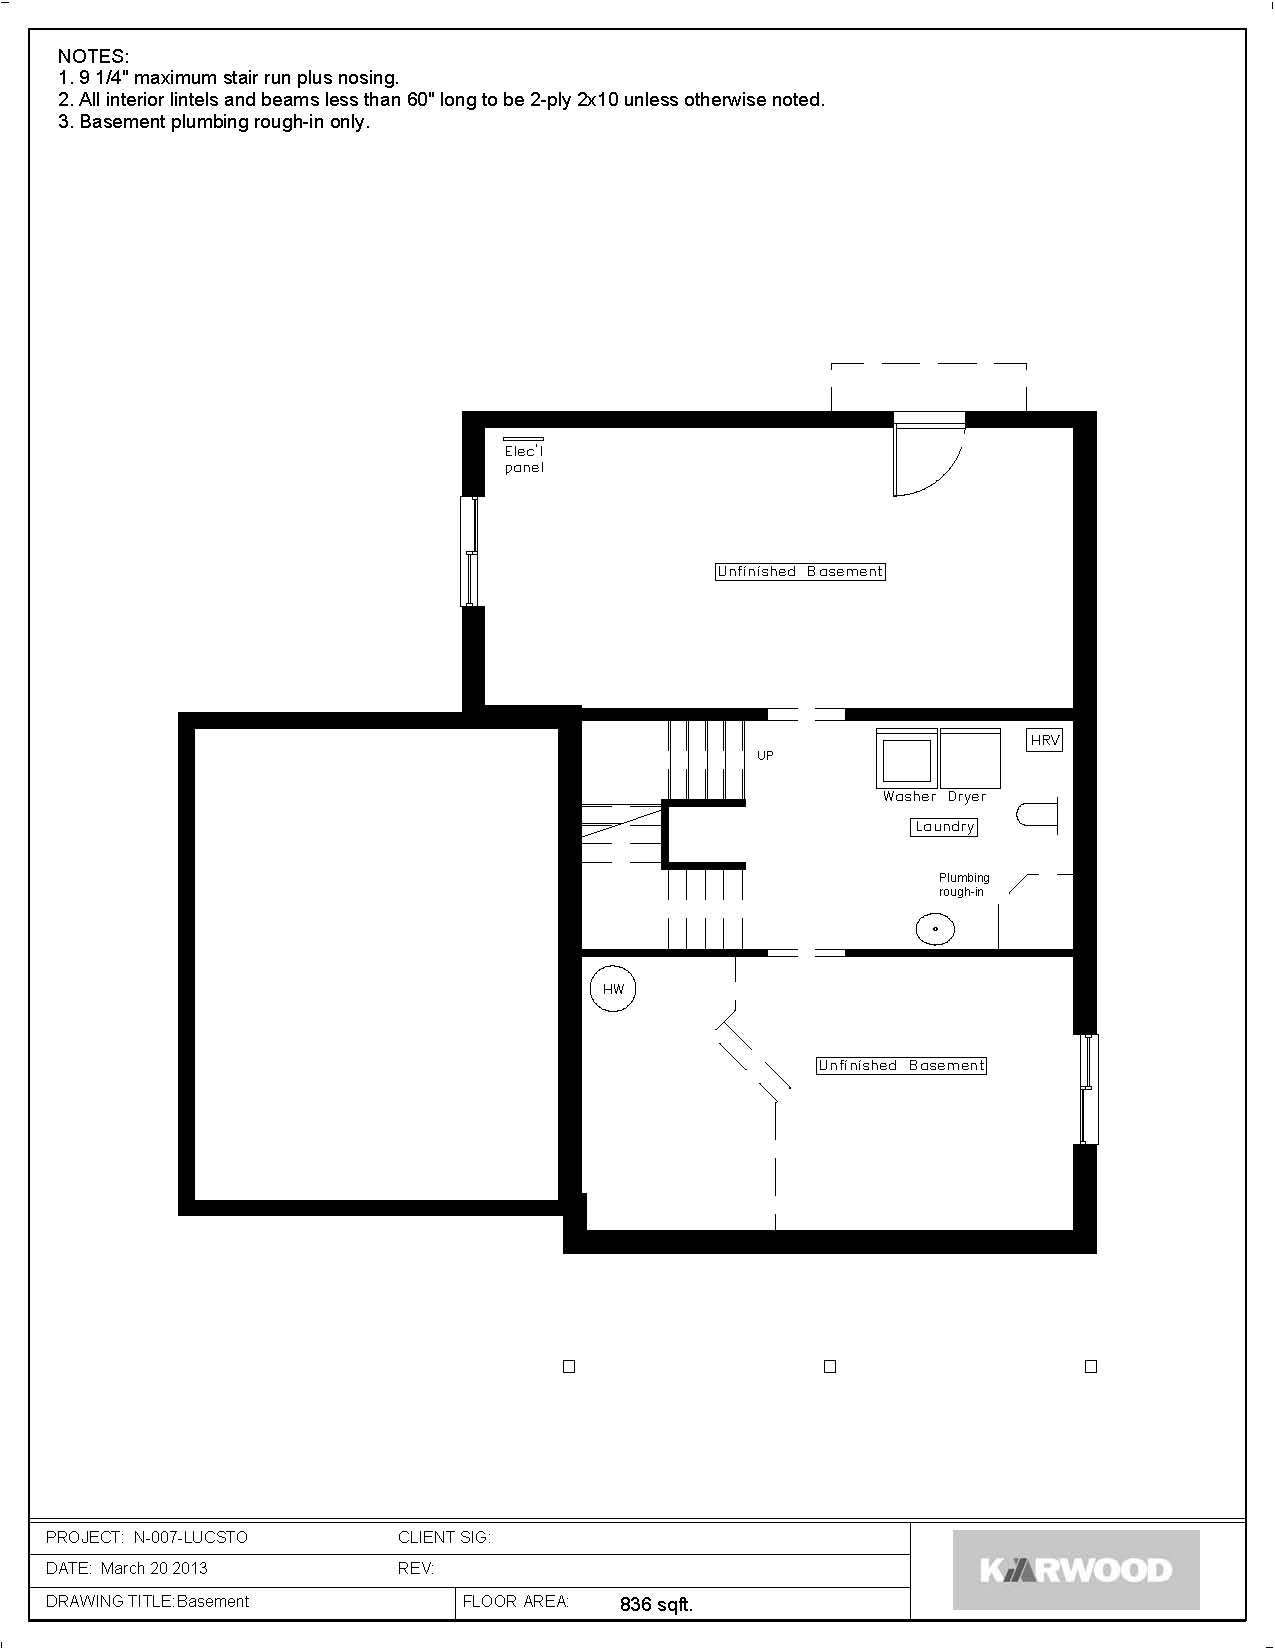 N-007-LUCSTO (listing plans)_Page_1.jpg